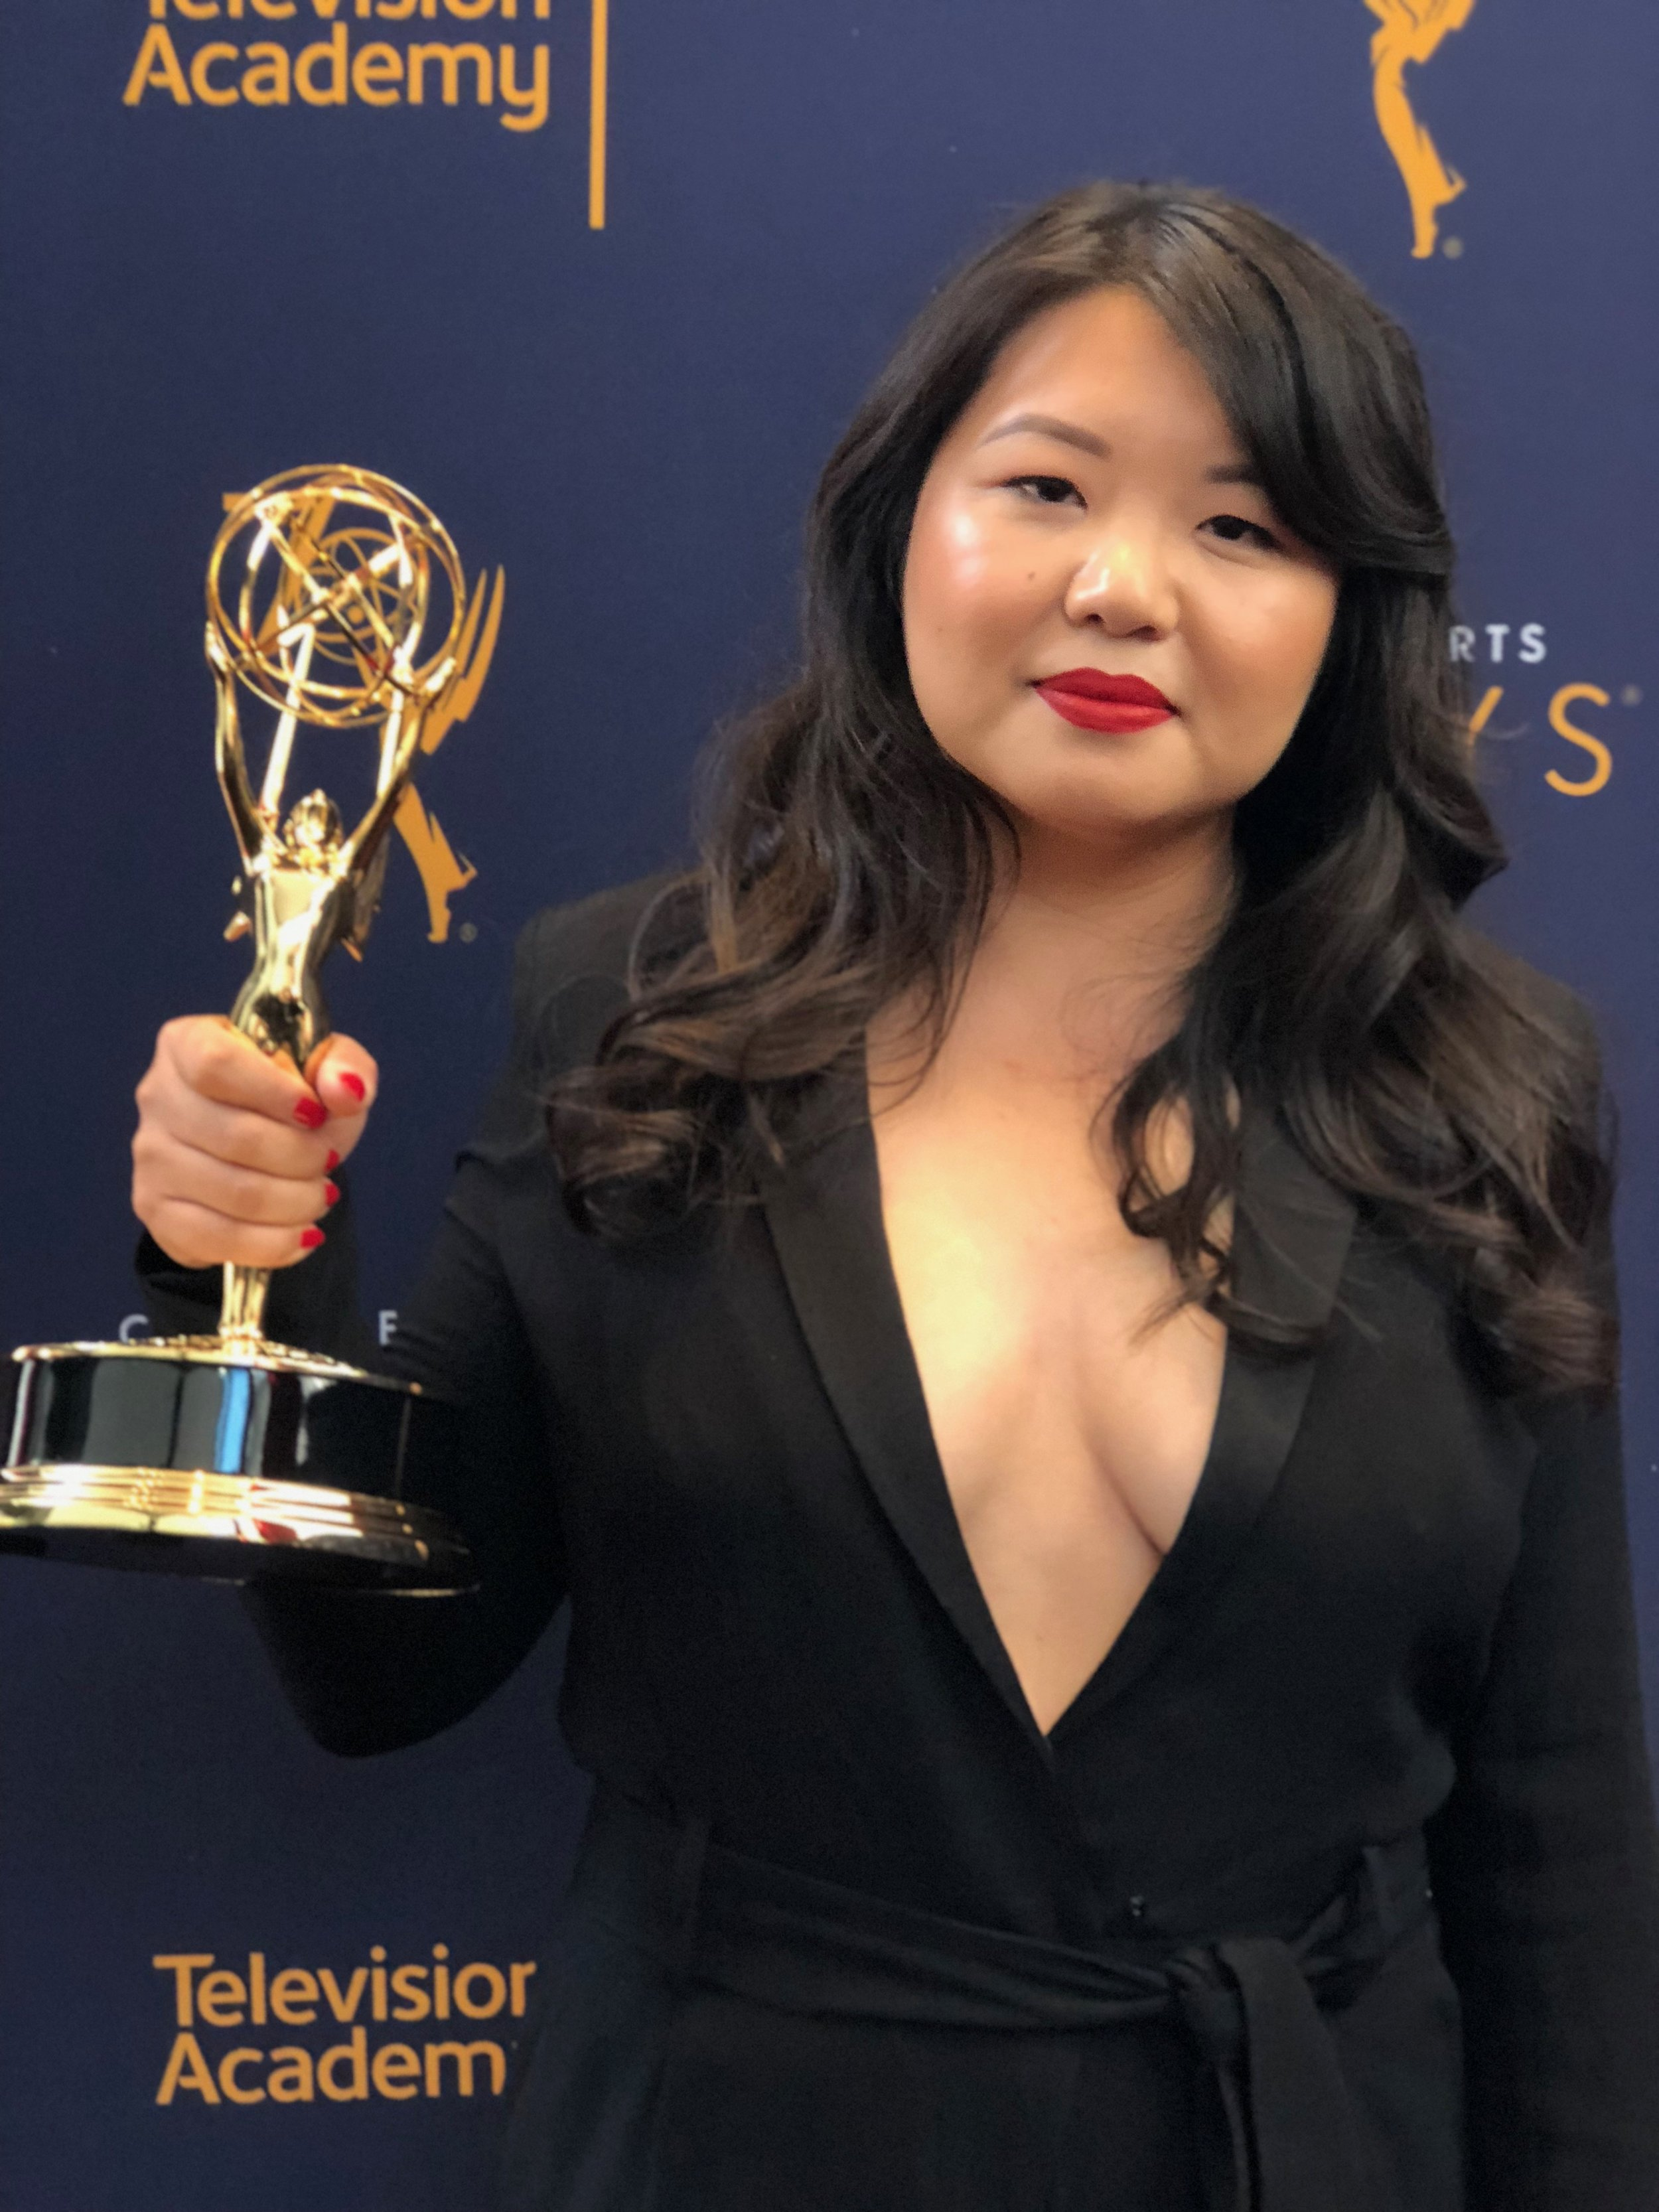 """Jessica Gao - Jessica Gao is a Los Angeles-based screenwriter. She was born in Beijing and raised in the San Gabriel Valley, a suburb of LA. She has written for Rick & Morty, Silicon Valley, Corporate, and Robot Chicken. She co-hosts """"Whiting Wongs,"""" a podcast about race and writing with Dan Harmon. She recently won an Emmy Award for her work on"""